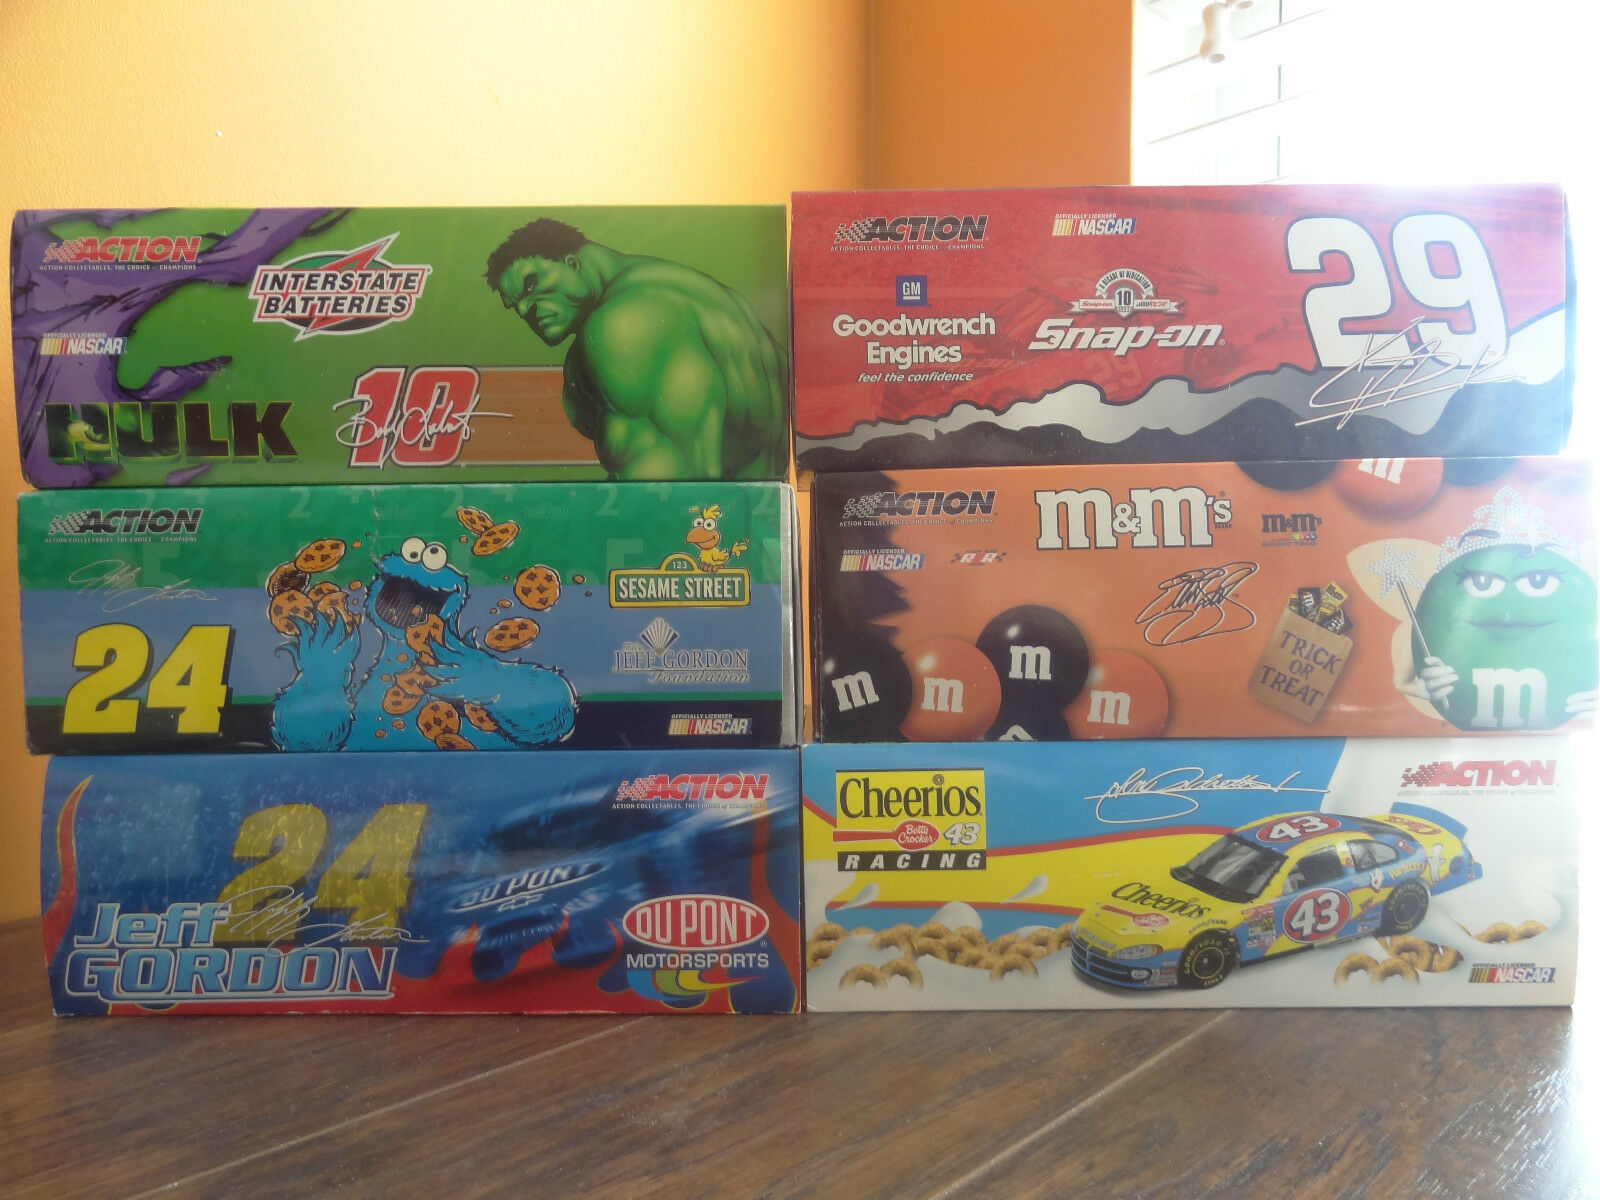 Action Cheerios Hulk Sesame Street M&M Halloween 1 24 Die Cast NASCAR 6 Car Lot